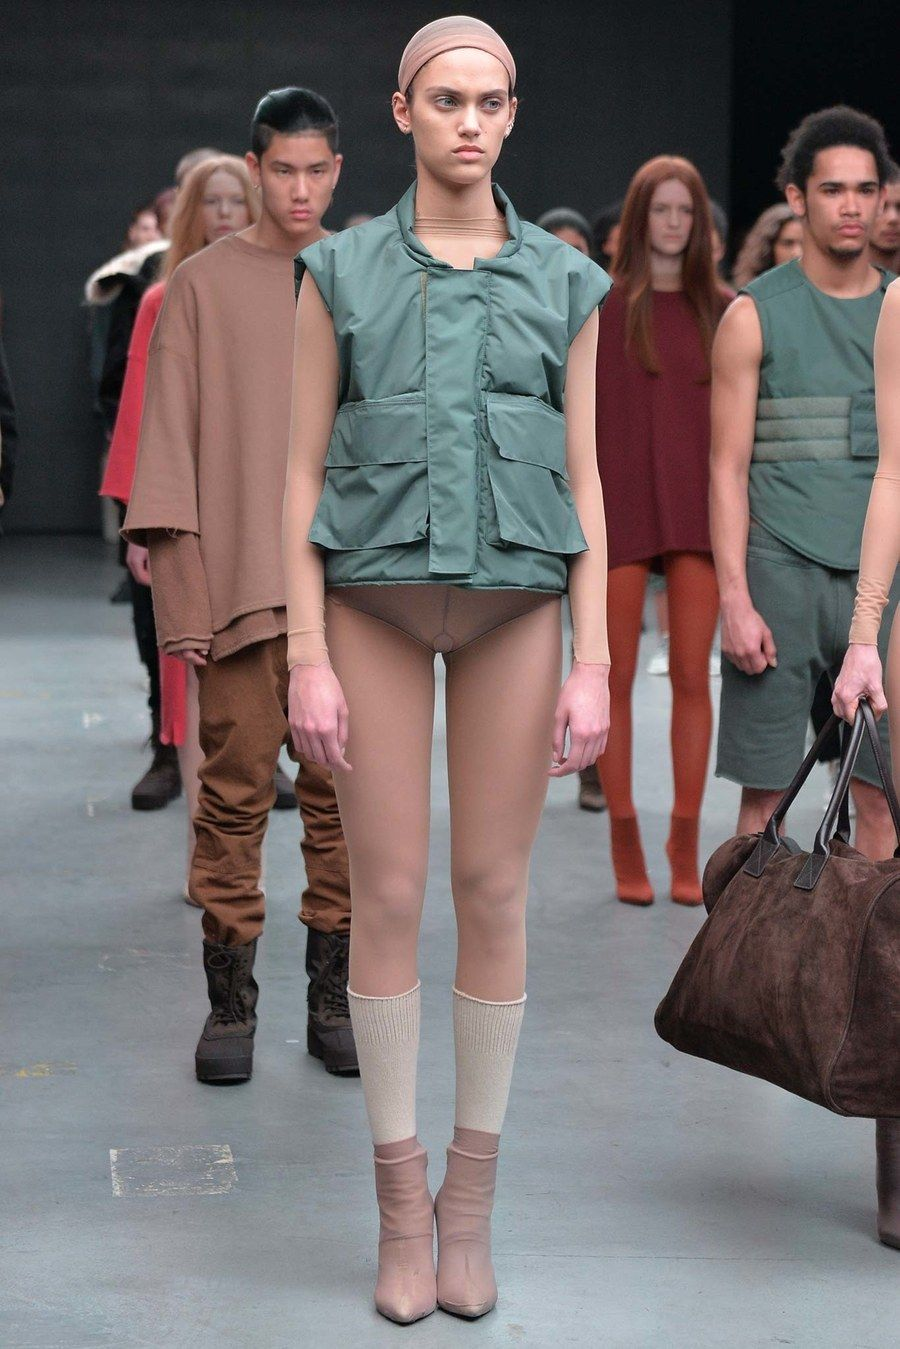 Yeezy Fall 2015 Ready To Wear Collection Runway Looks Beauty Models And Reviews In 2020 Yeezy Fashion Kanye West Adidas Fashion